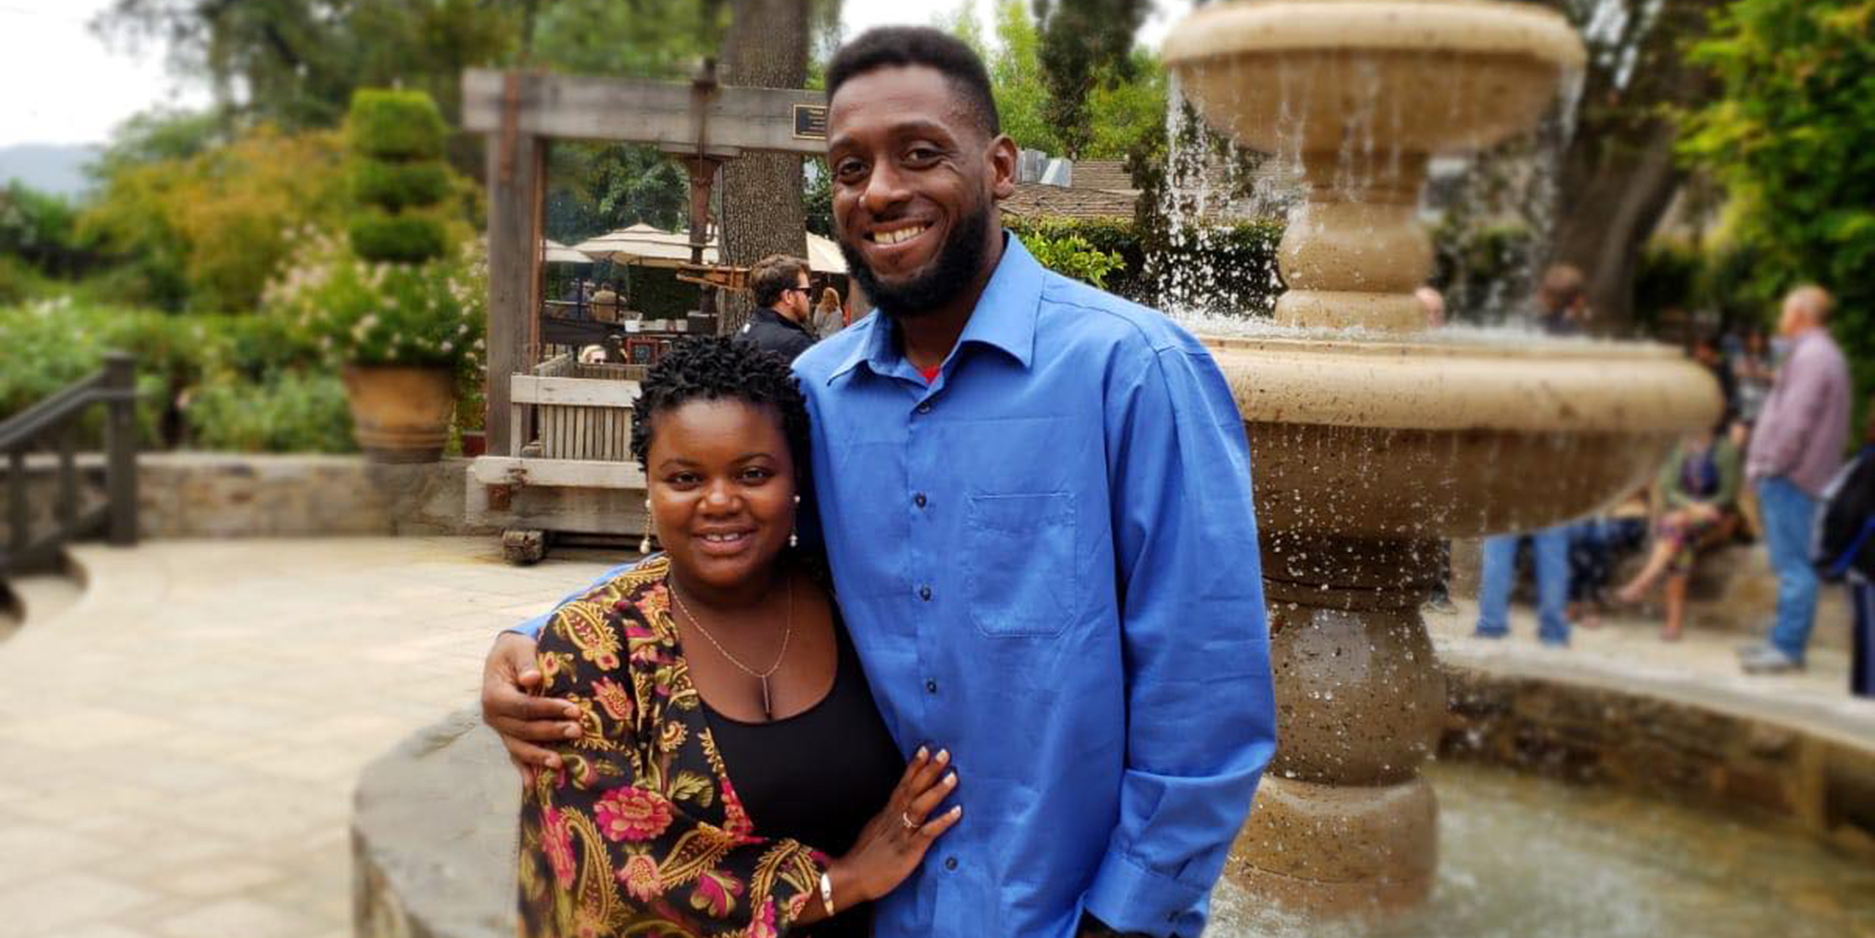 Couple claims they were racially profiled during marriage proposal at N.Y. orchard